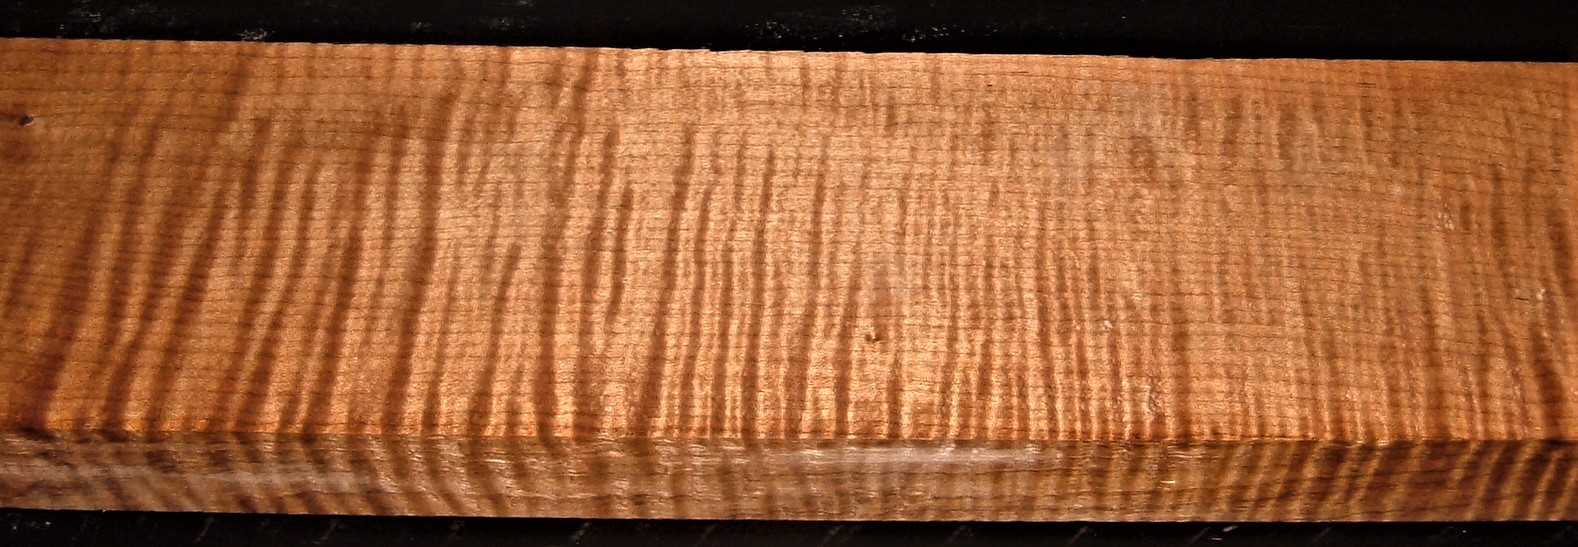 QRM2009-244JK, 1-3/16x3-3/4x45, Roasted Torrefied, Curly Tiger Quartersawn Maple